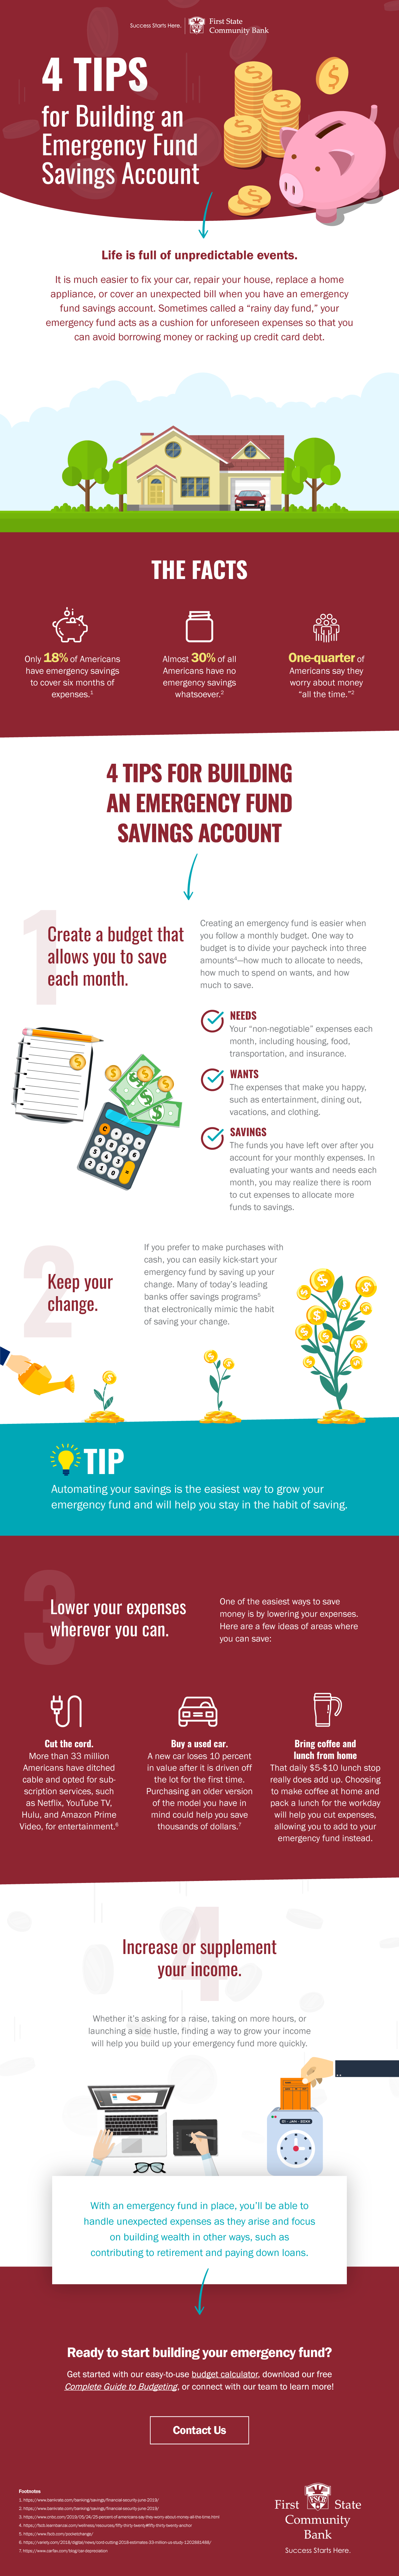 Infographic: 4 Tips for Building an Emergency Fund